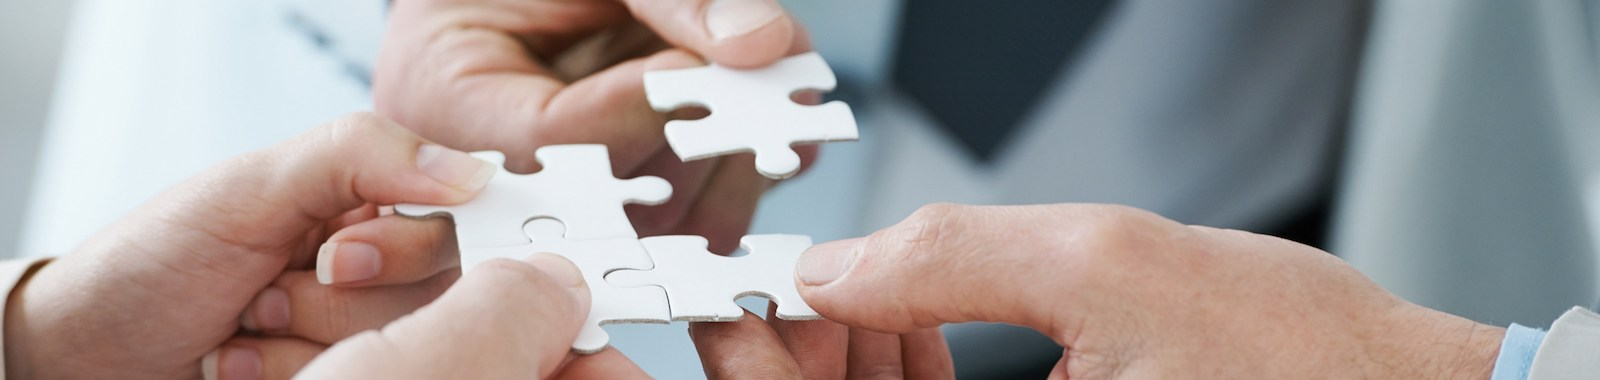 A business concept image of puzzle pieces fitting together - closeup